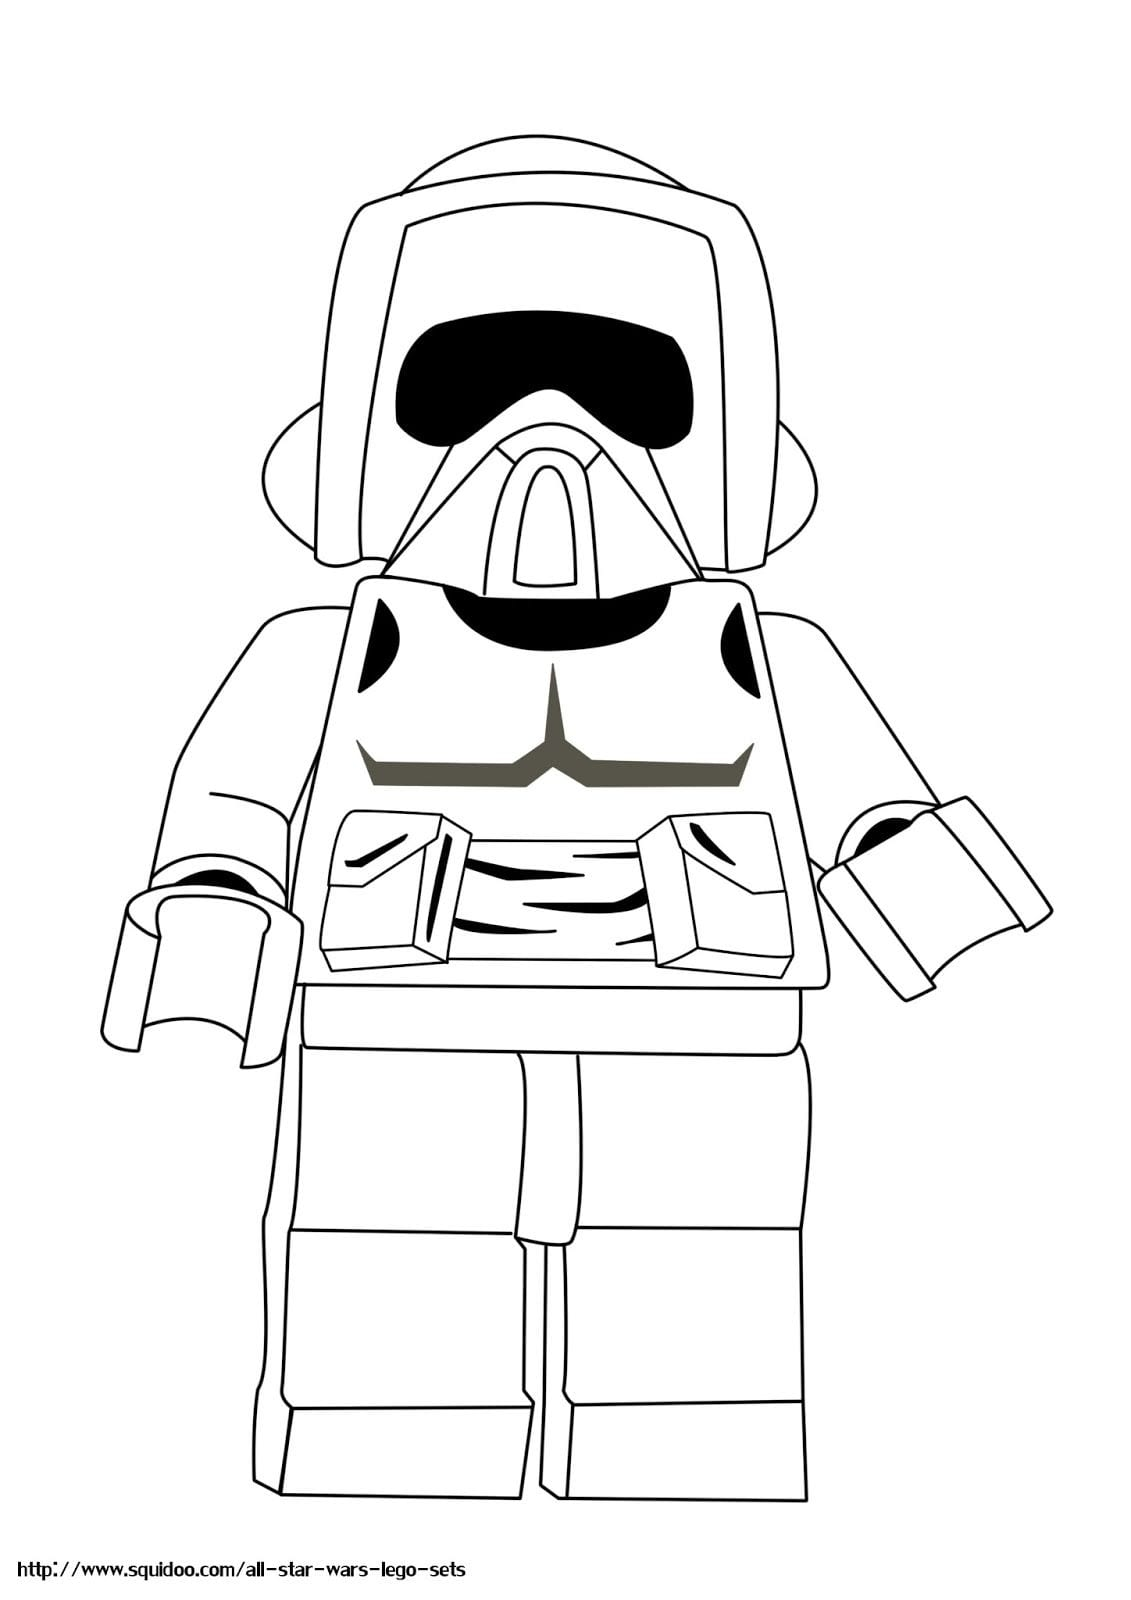 Lego Star Wars Printable Coloring Pages, Lego Star Wars Coloring